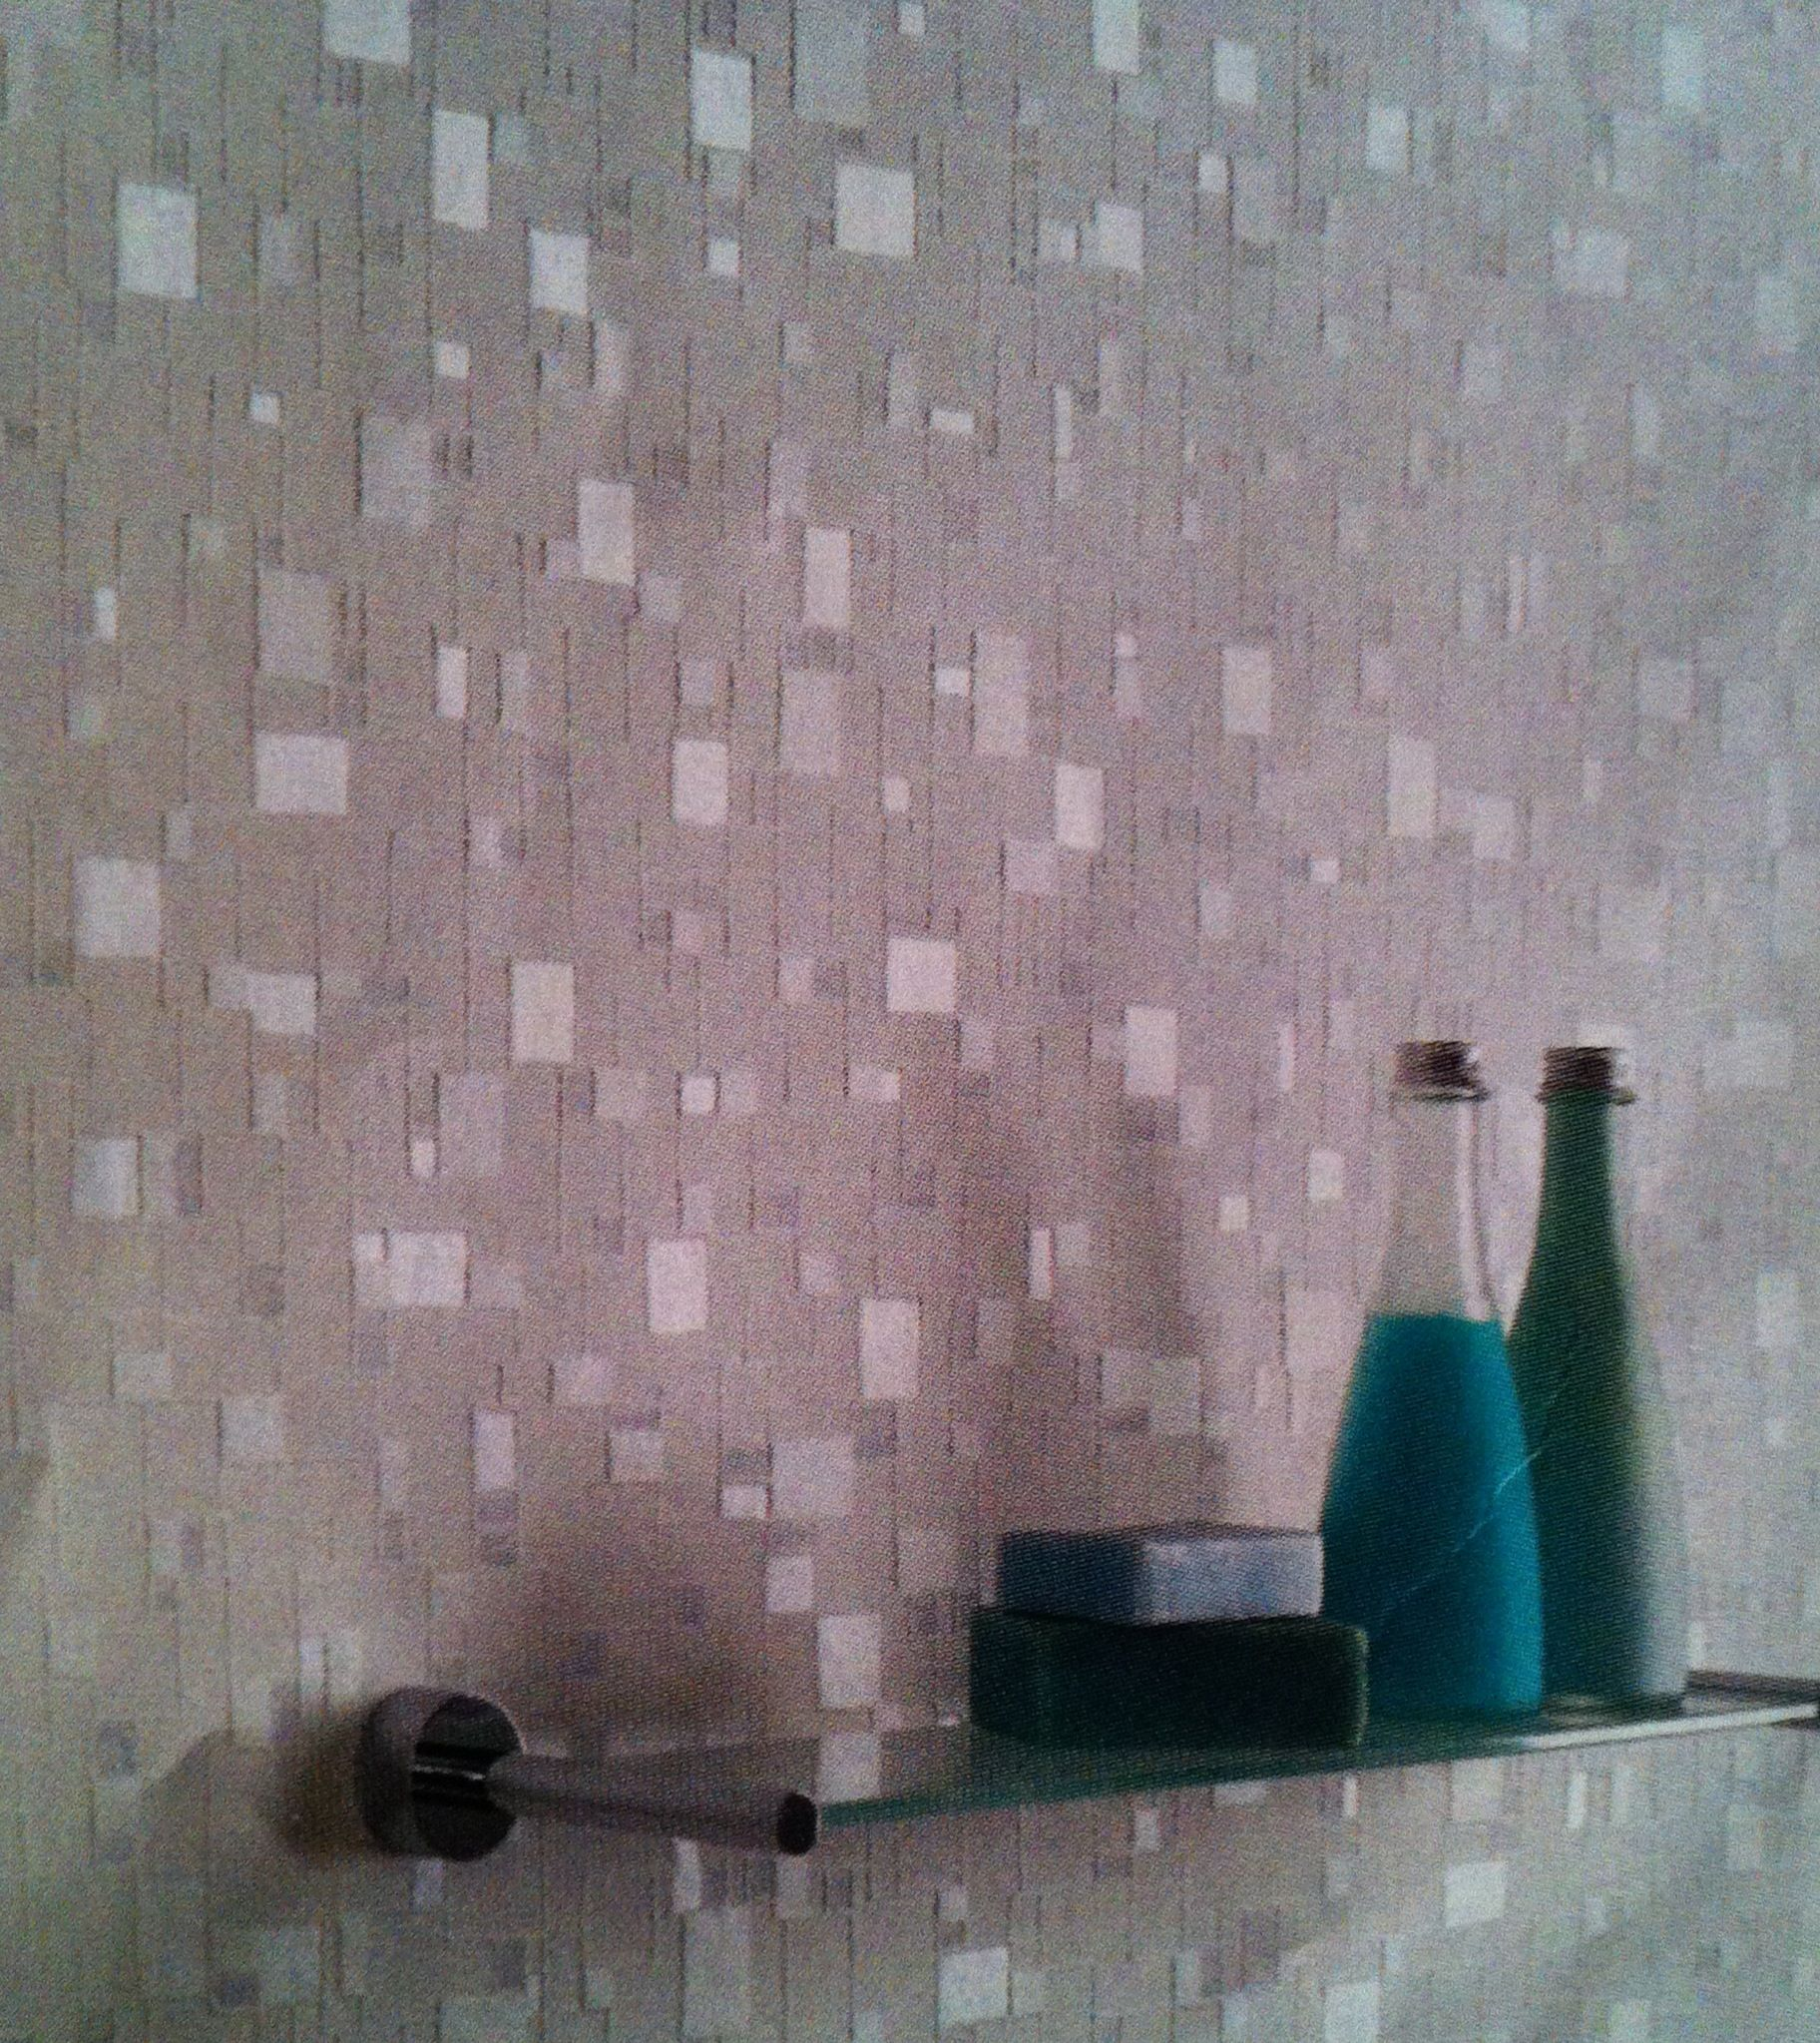 Faux Glass Tile Teal Gray Peel And Stick Wallcoverings Teal Gray Backsplash 15 Sq Ft Ca Contemporary Wallp Glass Mosaic Tiles Glass Tile Wall Coverings